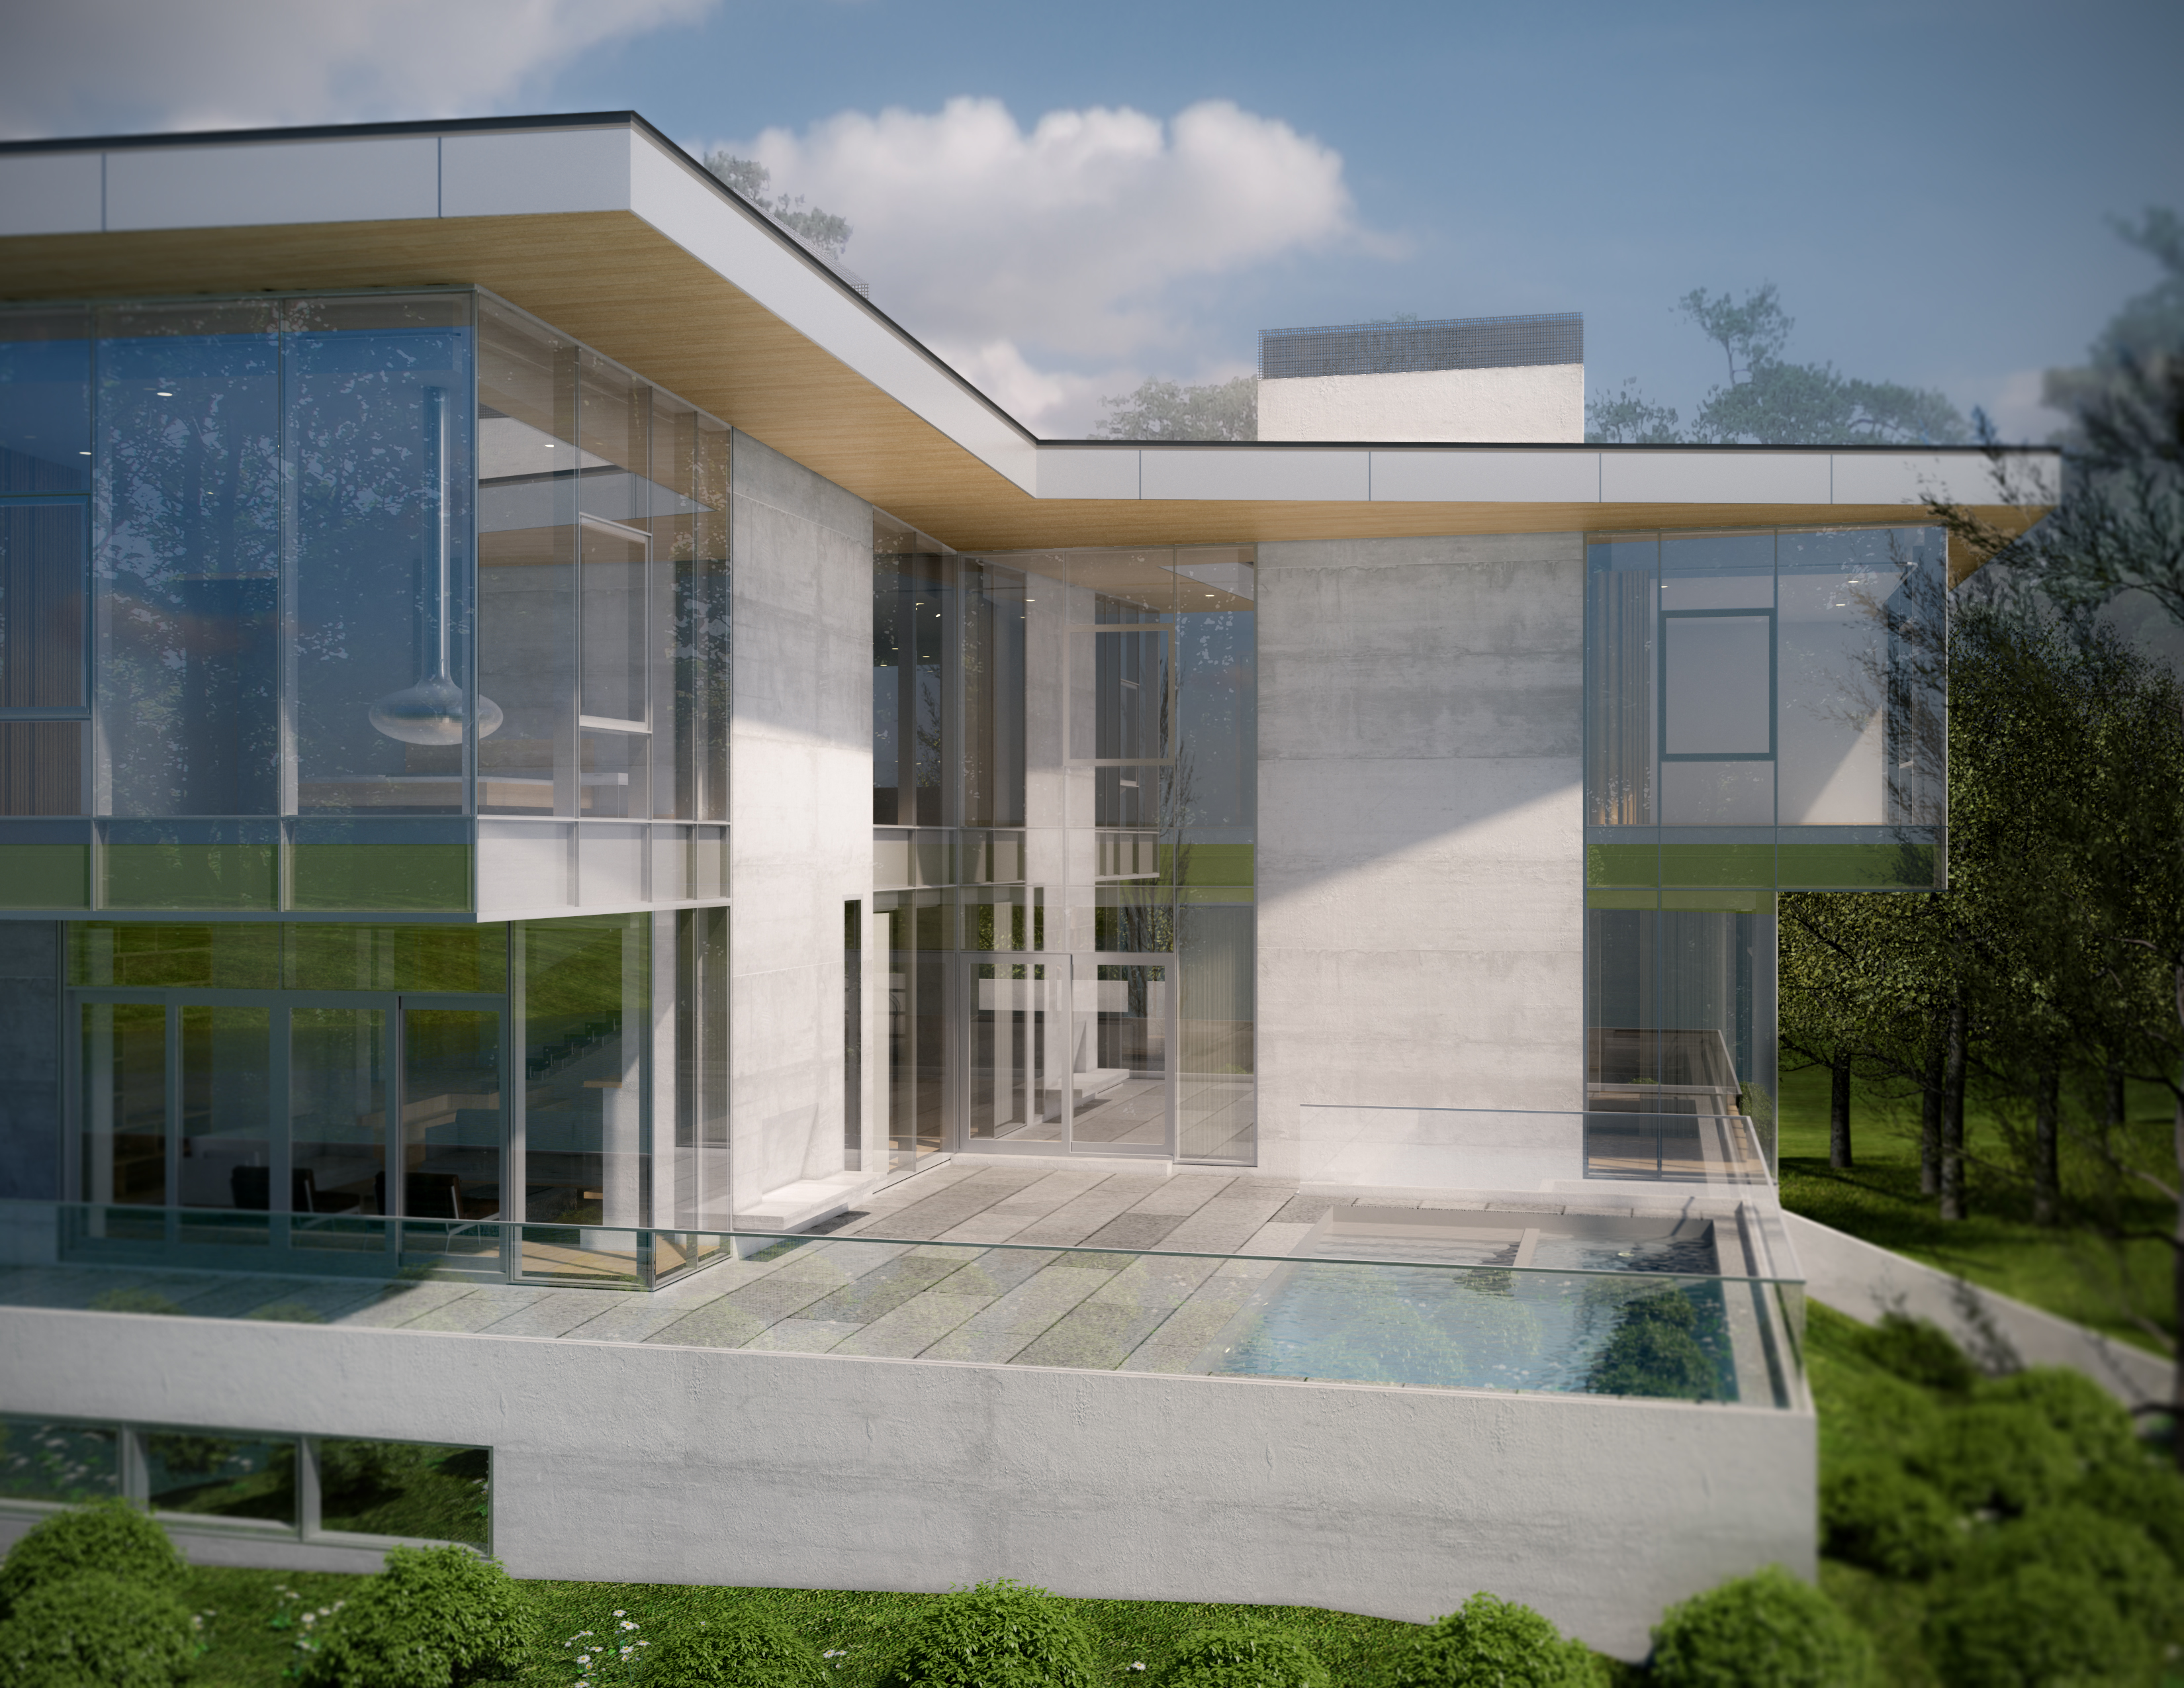 Rendering of pool and modern home